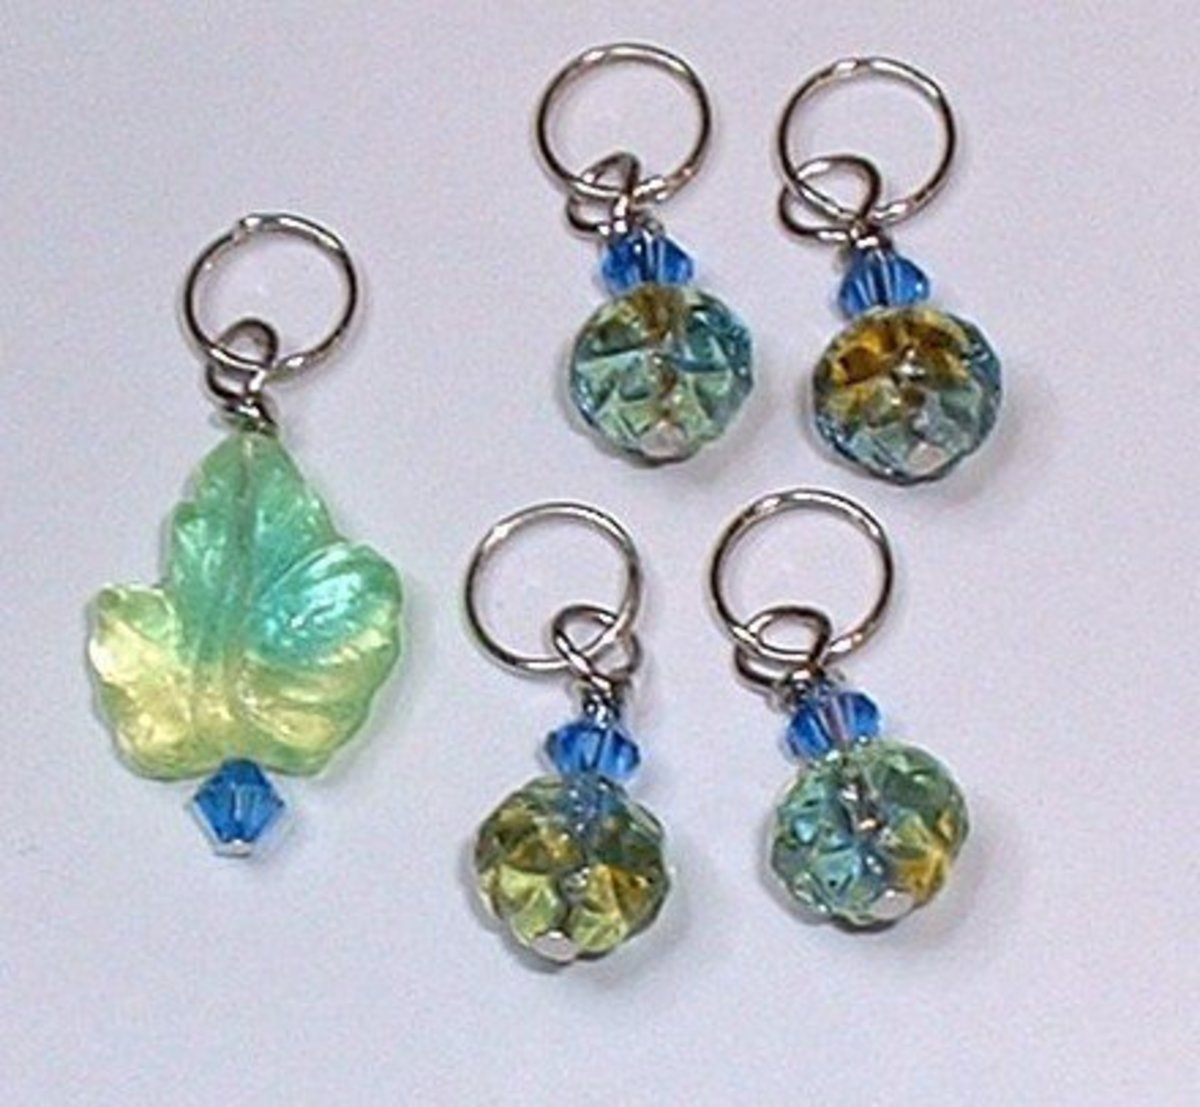 Beaded stitch markers with large glass leaf bead and smaller swirl round beads.